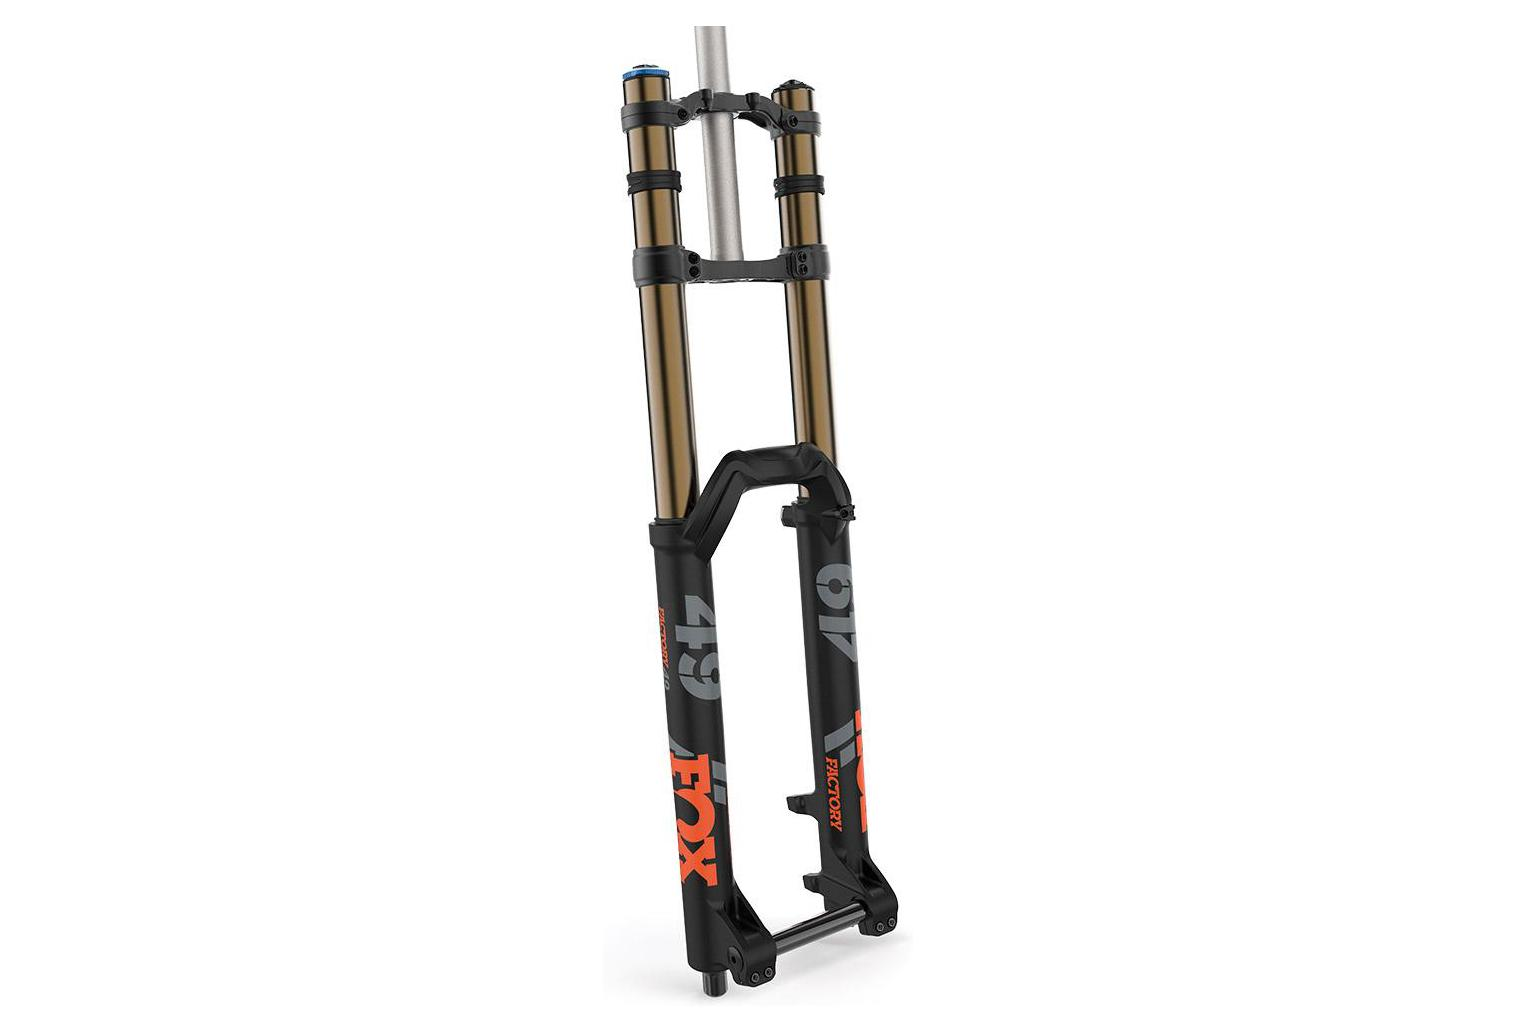 Fox Racing Shox 49 Float Factory 29'' Grip 2 FIT Fork